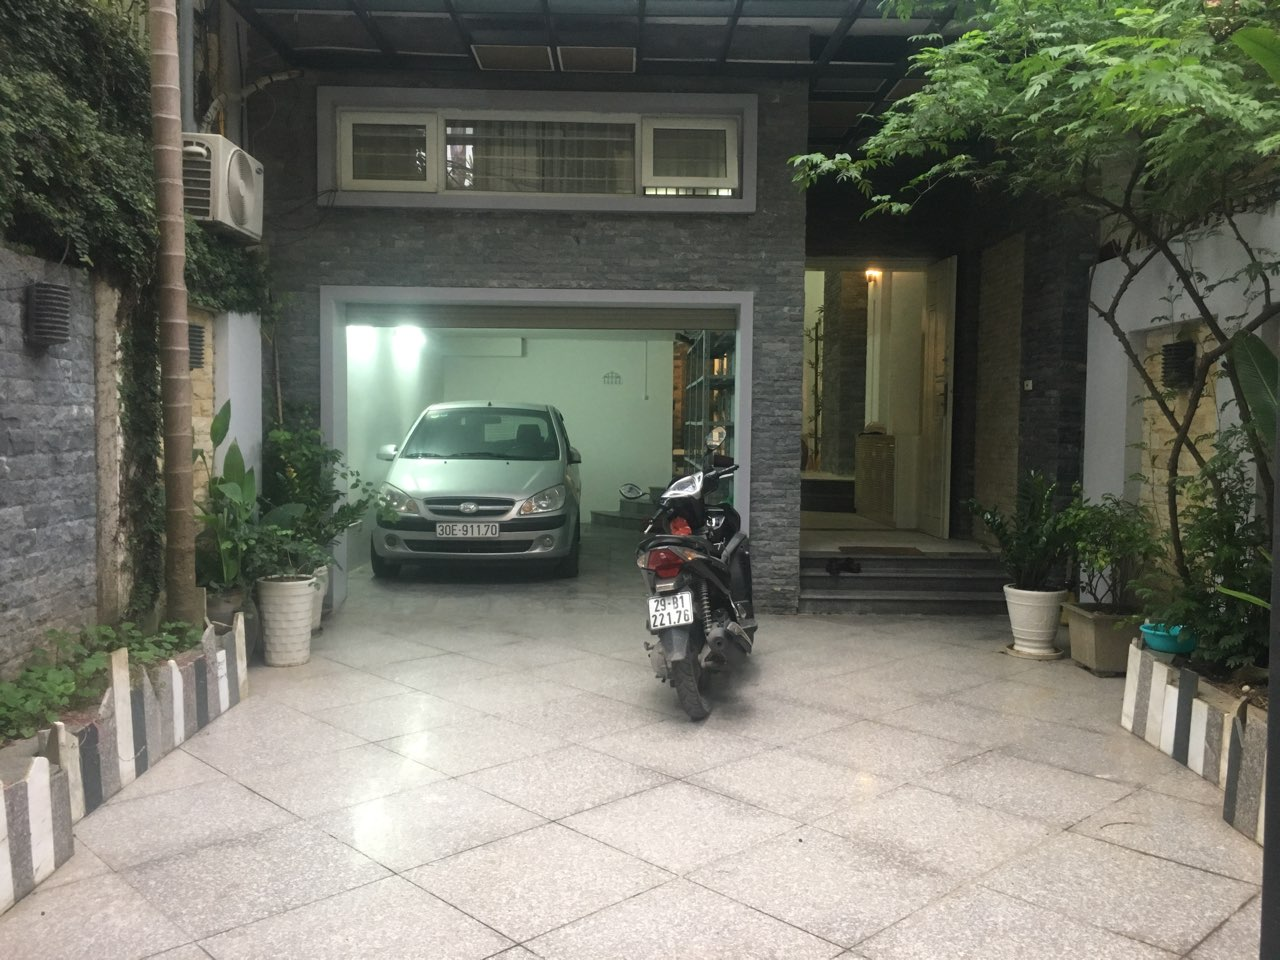 A 3-bedroom unfurnished house for rent on Dang Thai Mai street, Tay Ho district!